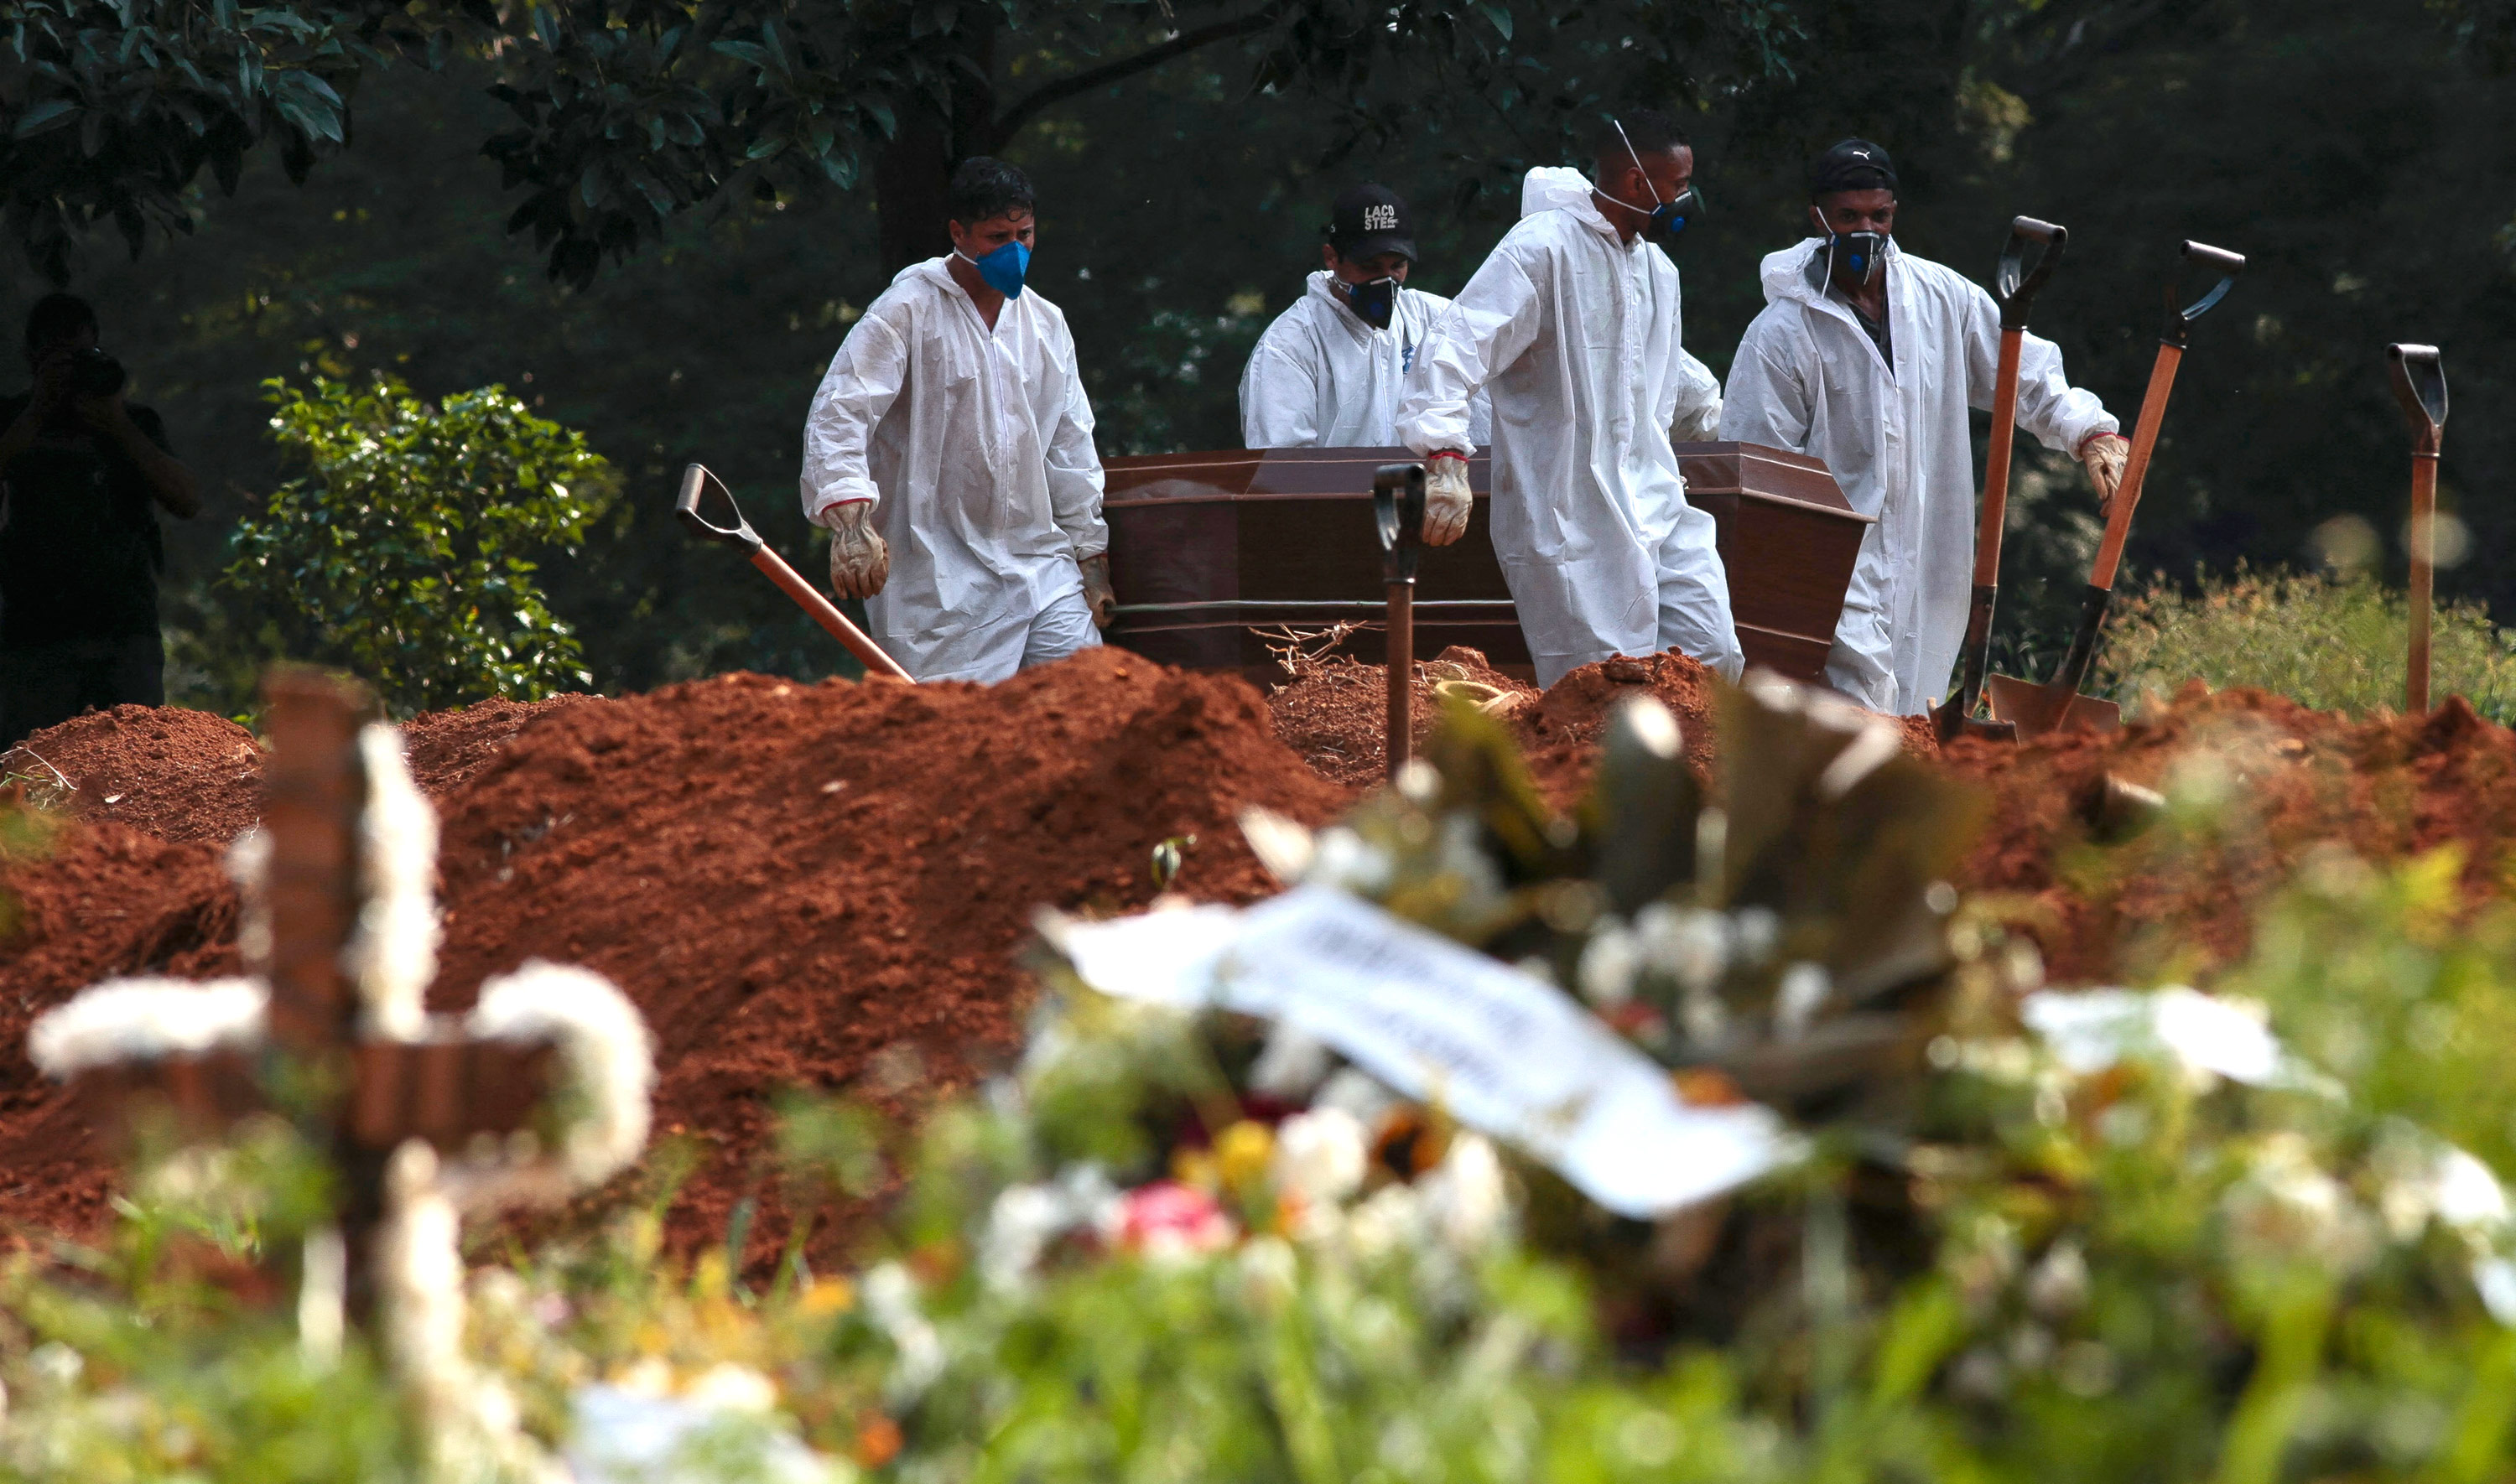 Cemetery workers carry the coffin of a Covid-19 victim at the Vila Formosa cemetery in Sao Paulo, Brazil, on March 23.